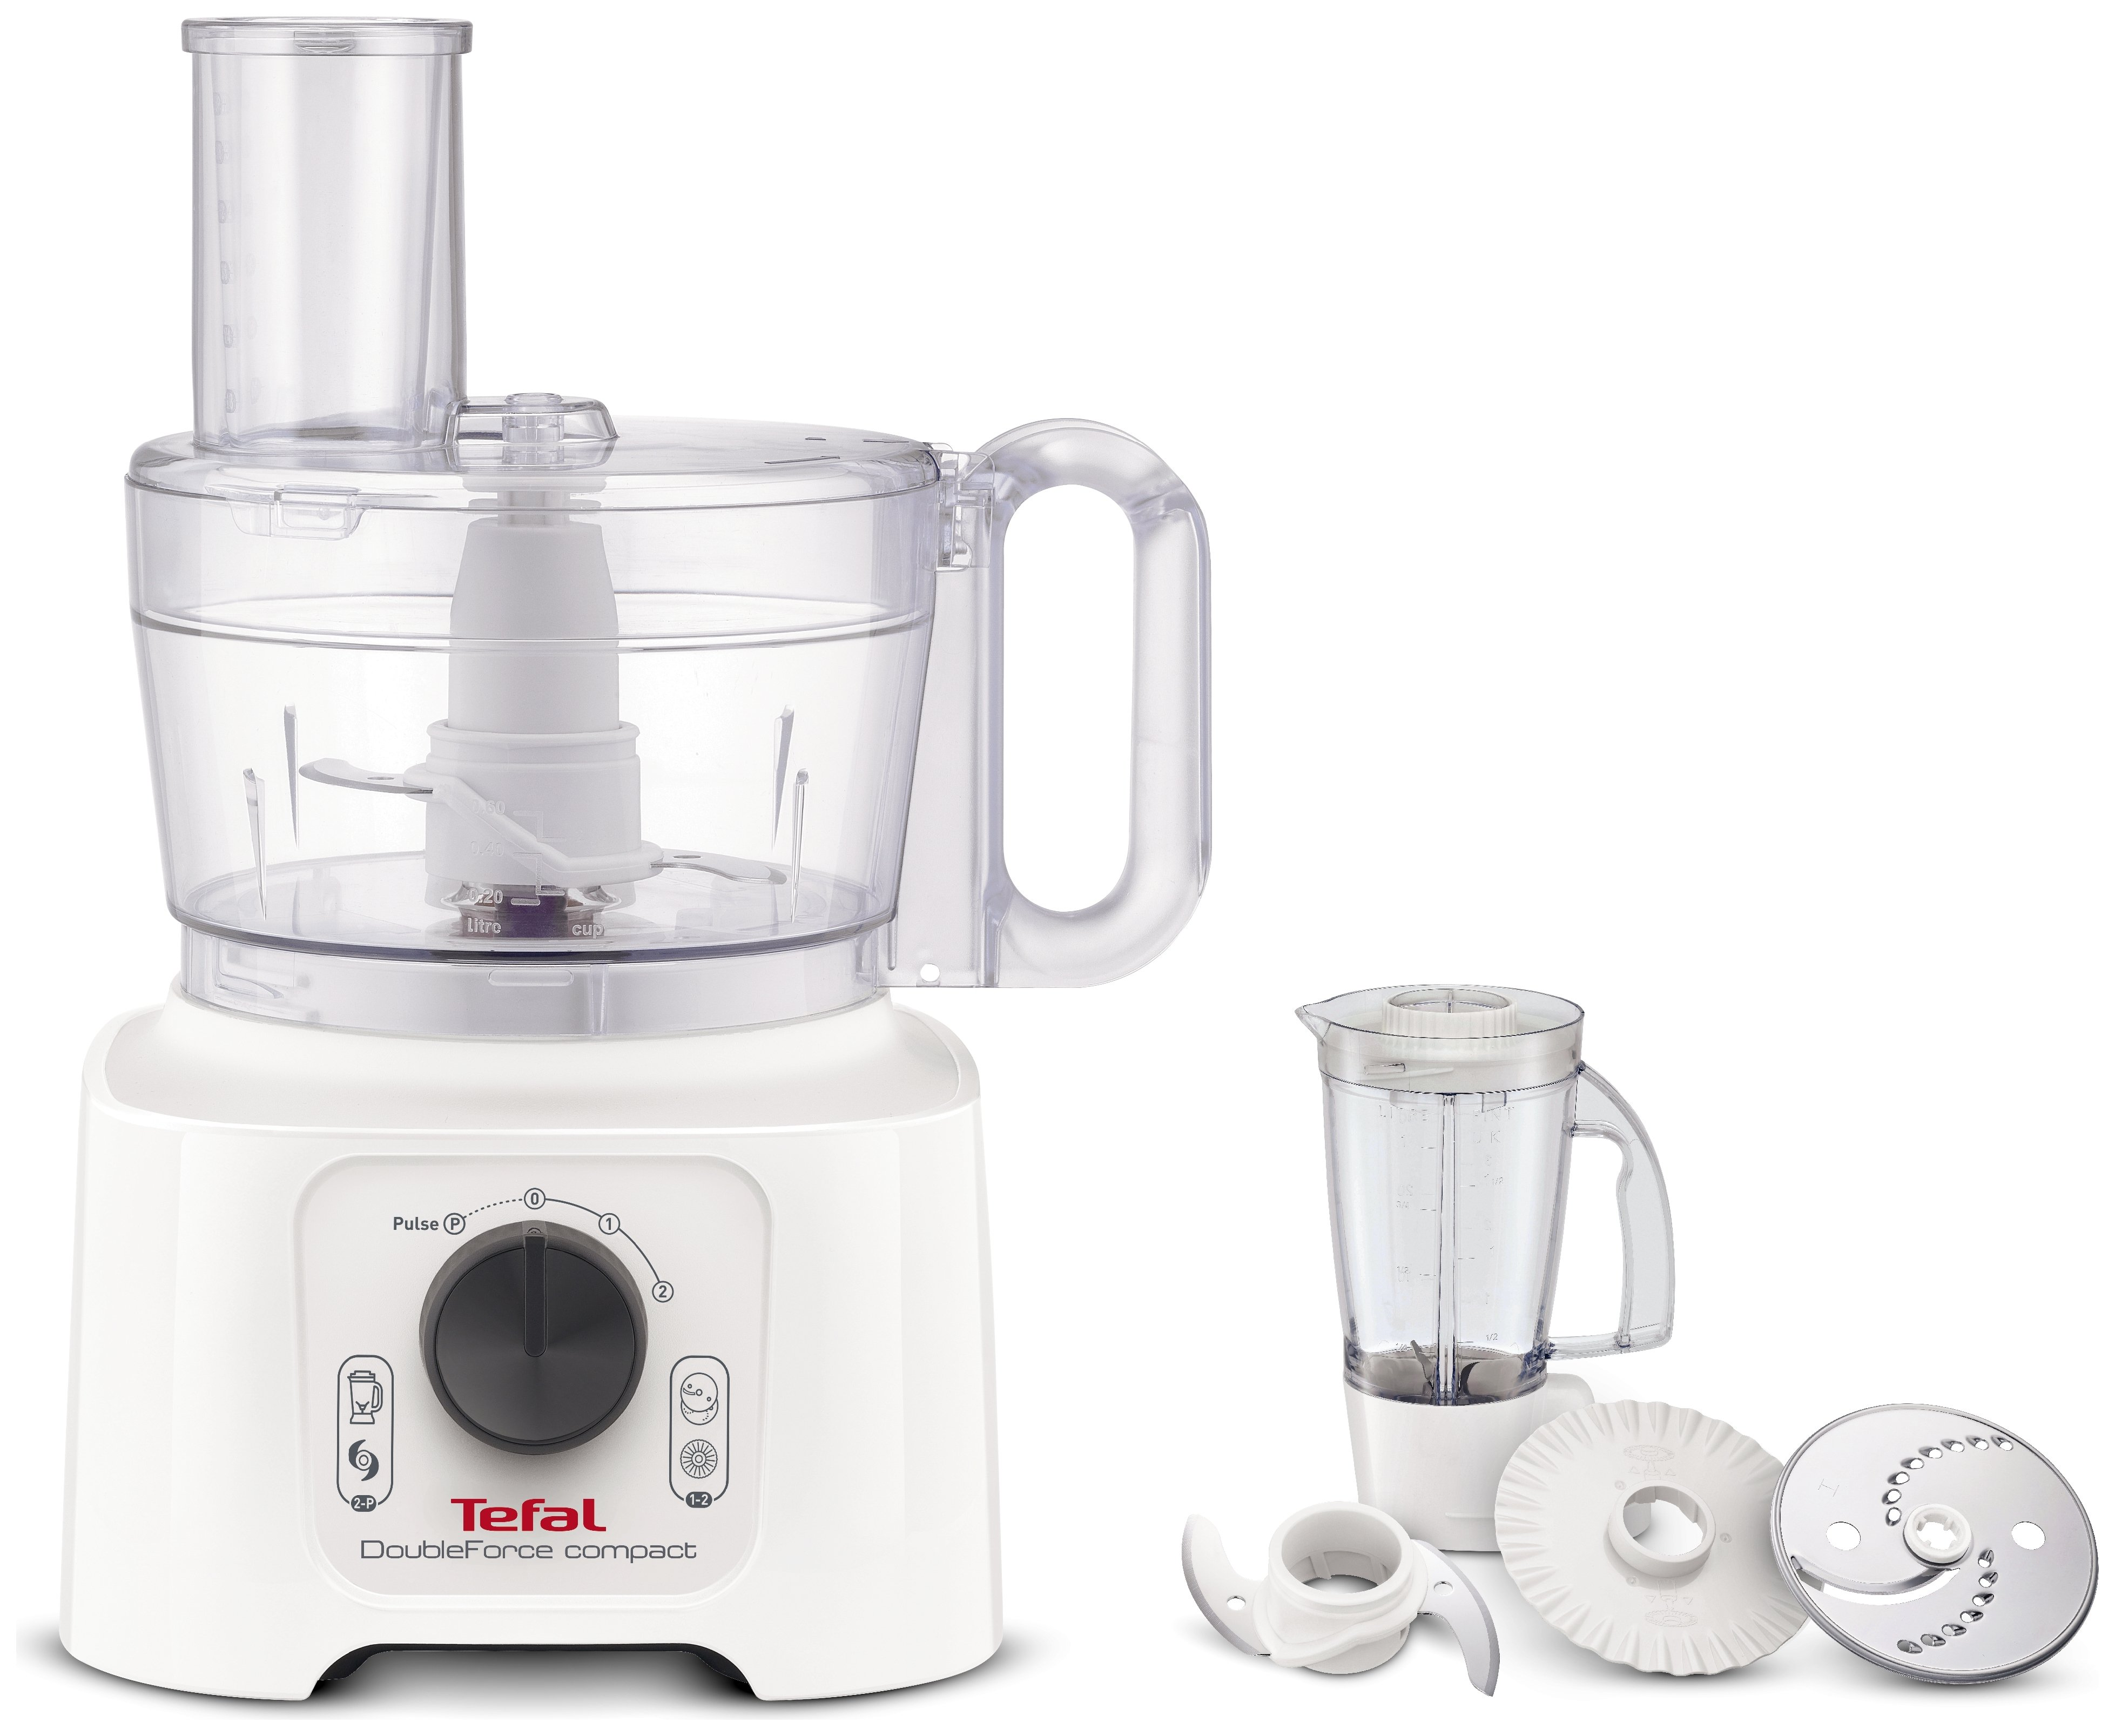 Tefal DO542140 Double Force Compact Food Processor - White